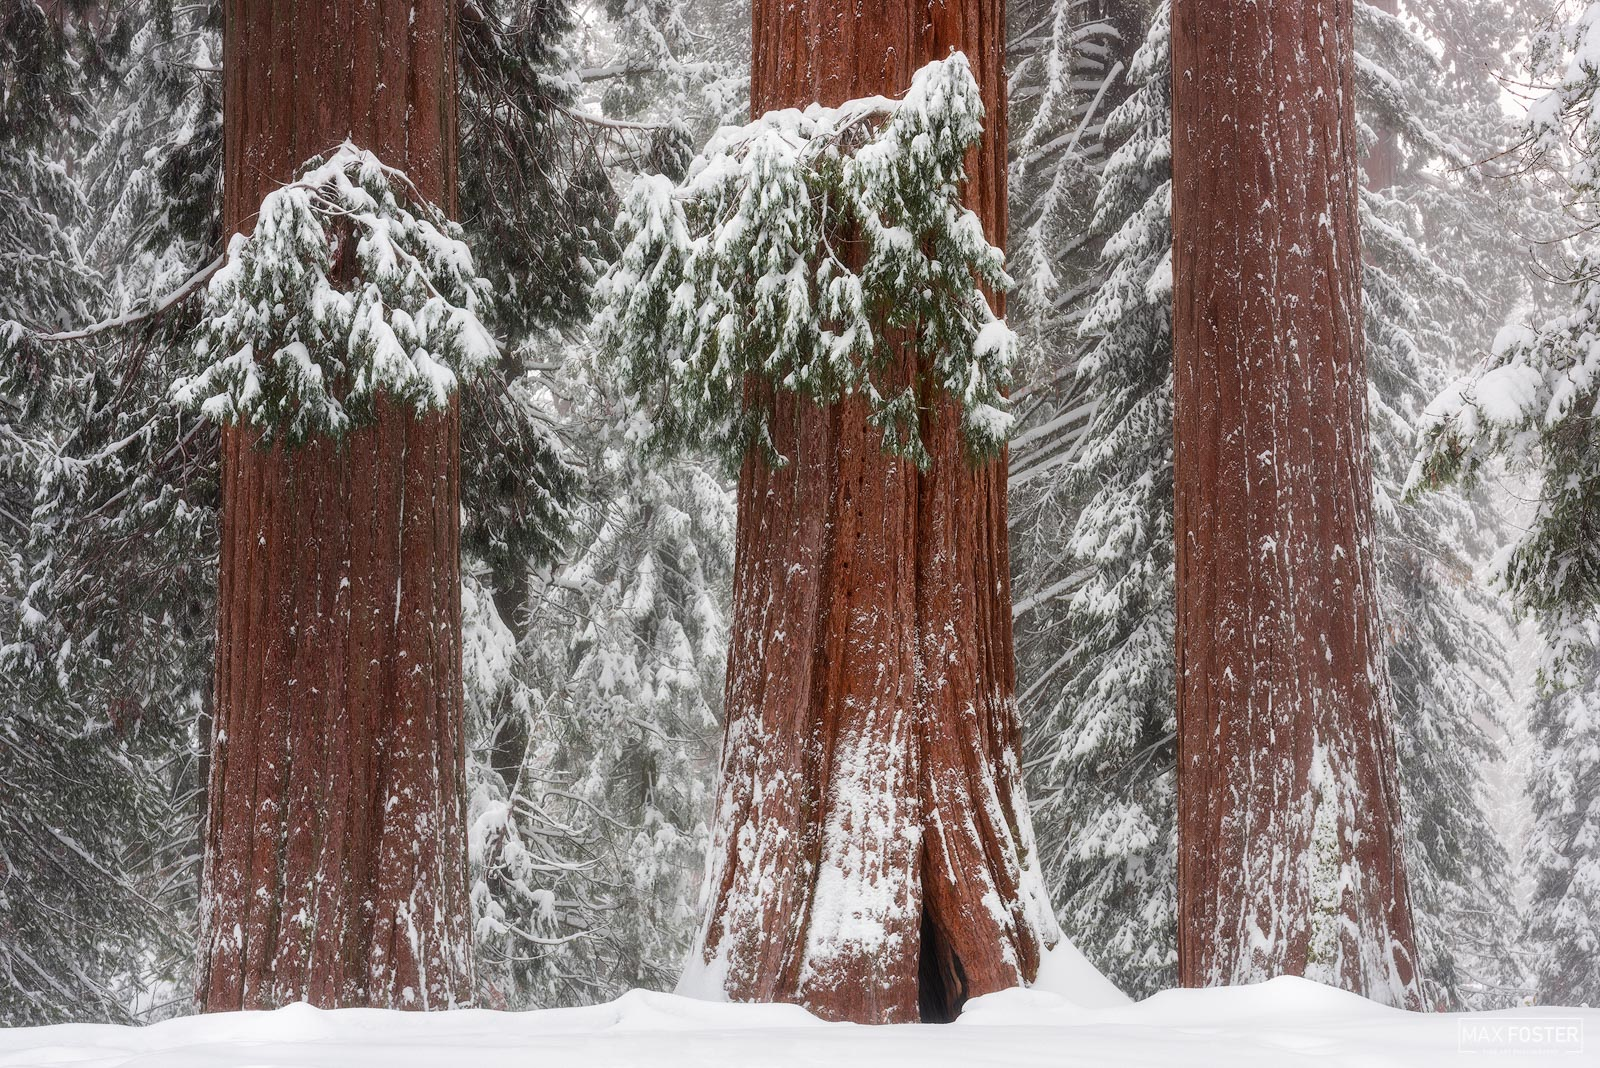 Sequoia National Park, Kings Canyon National Park, California, Giant Sequoia, Sierra Nevada, We Three Kings, photo